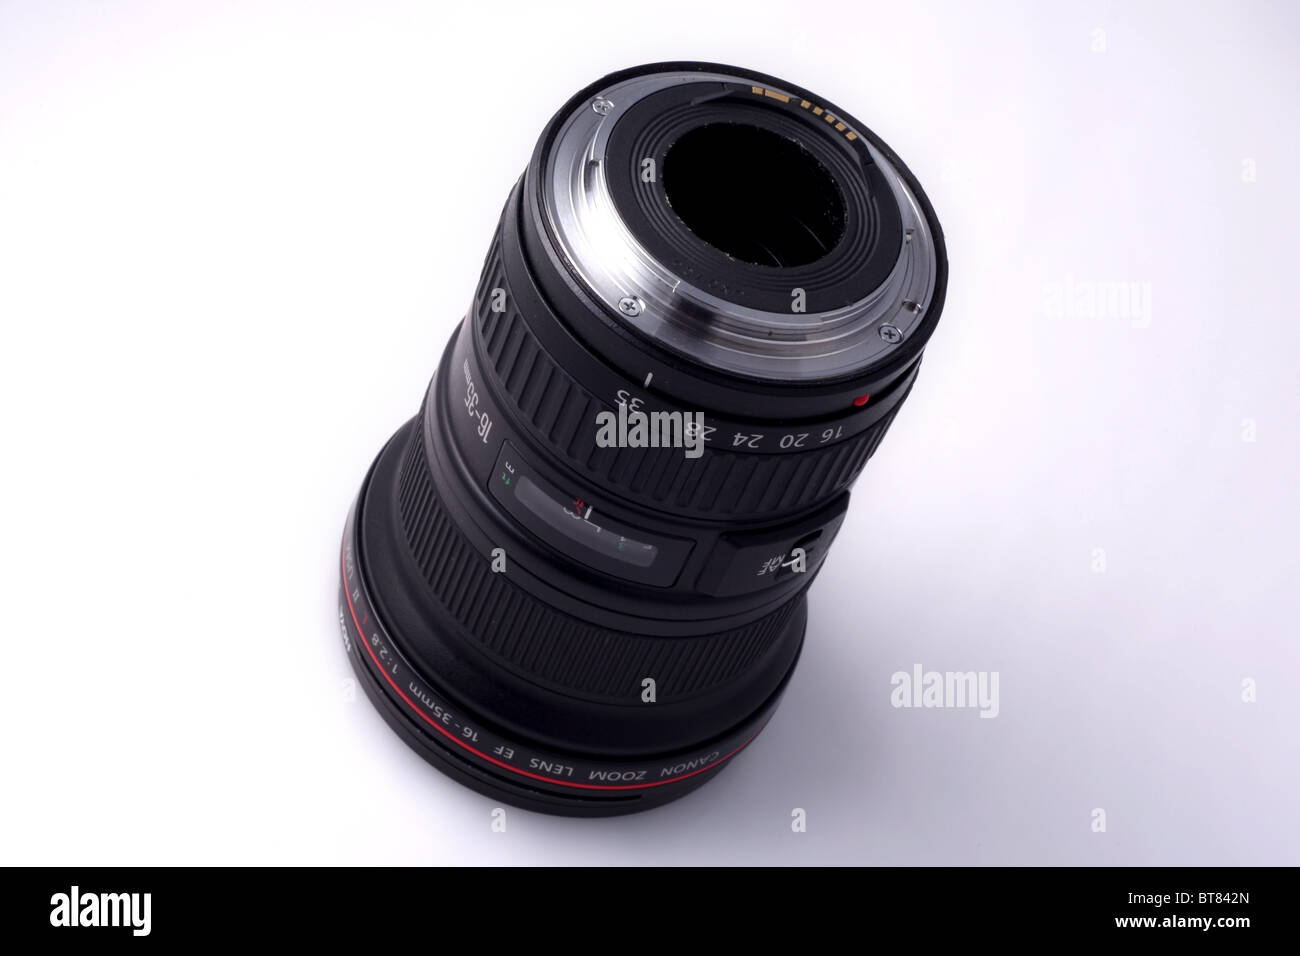 Canon Ef 16 35mm F 2 8l Ii Usm Lens Is A Professional Wide Angle Lens Stock Photo 32140941 Alamy